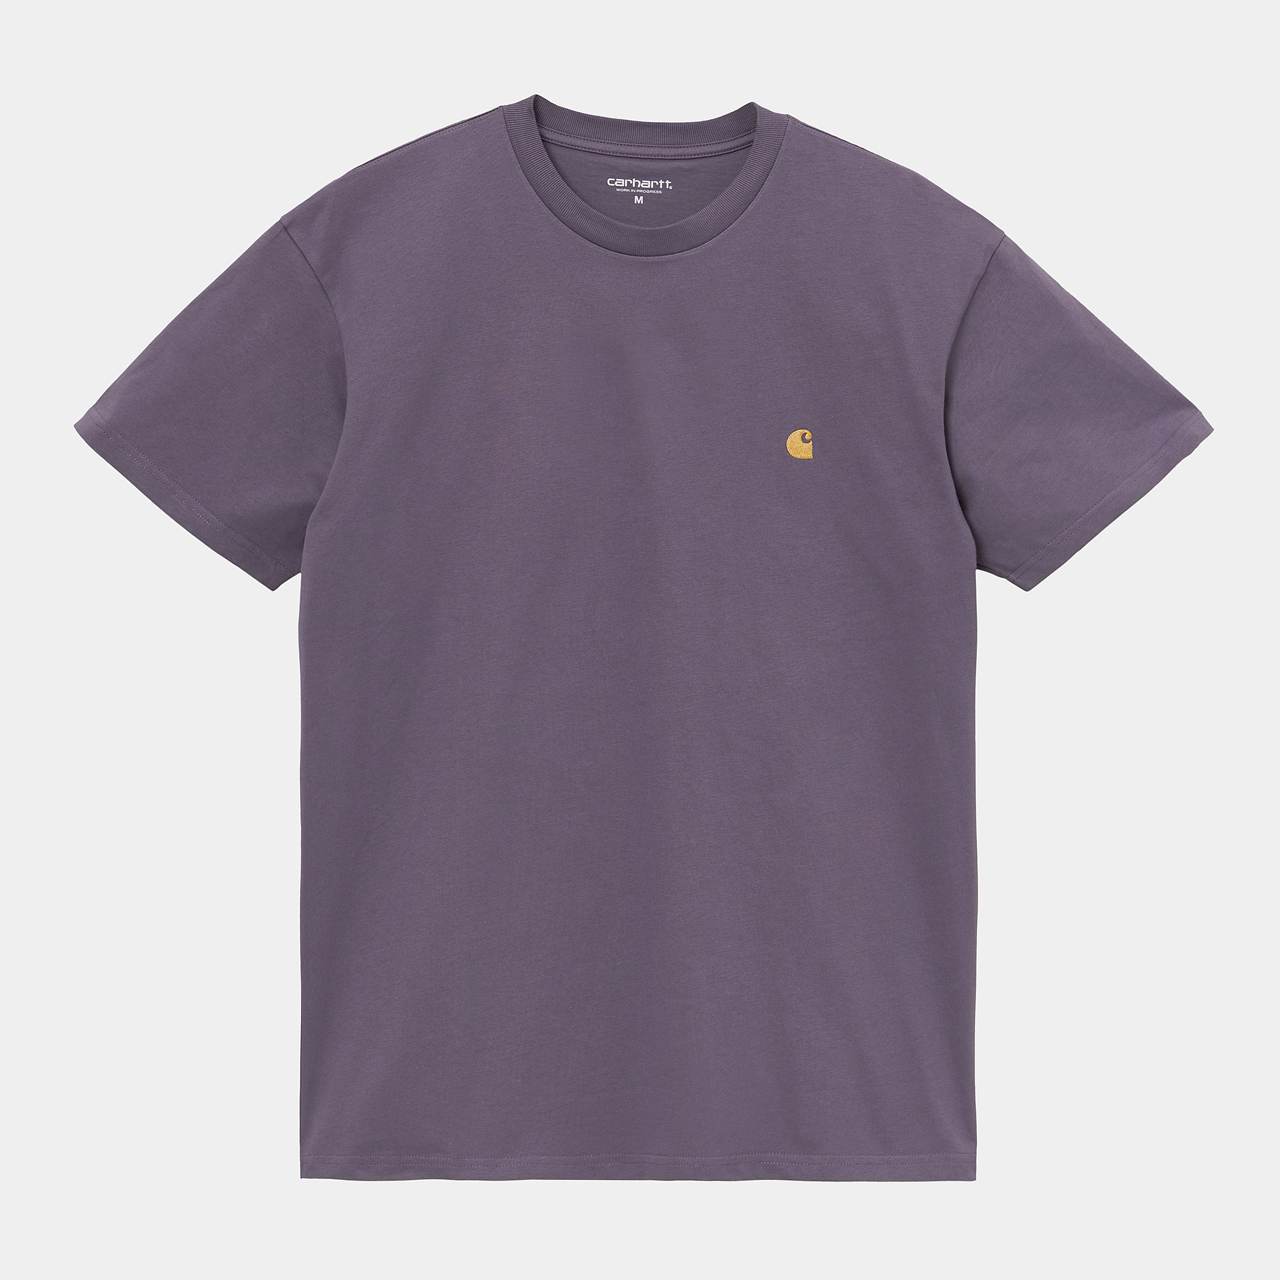 s-s-chase-t-shirt-provence-gold_1